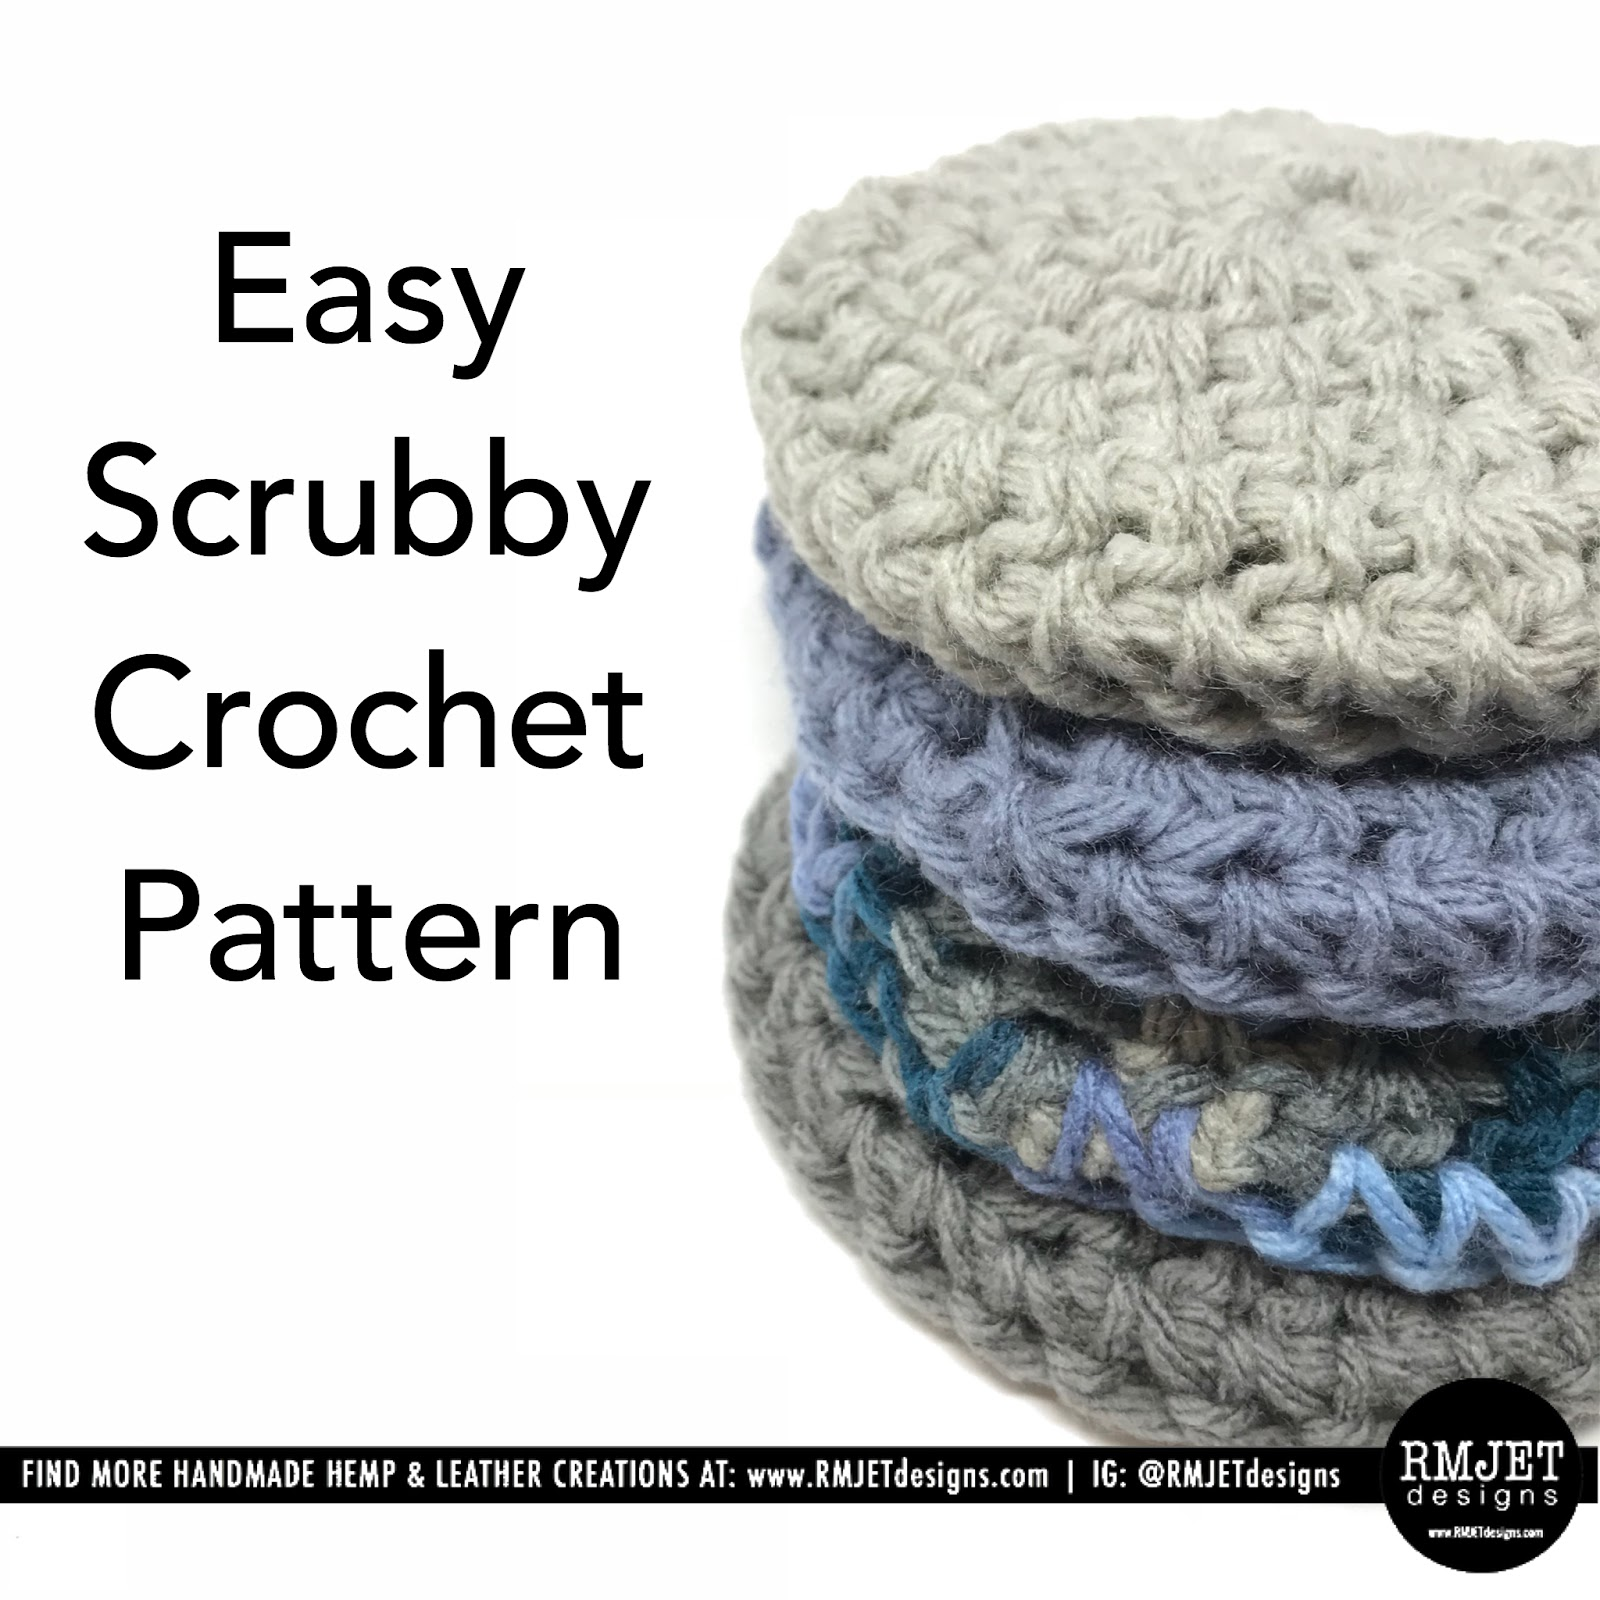 Easy Scrubby FREE Crochet Pattern by RMJETdesigns